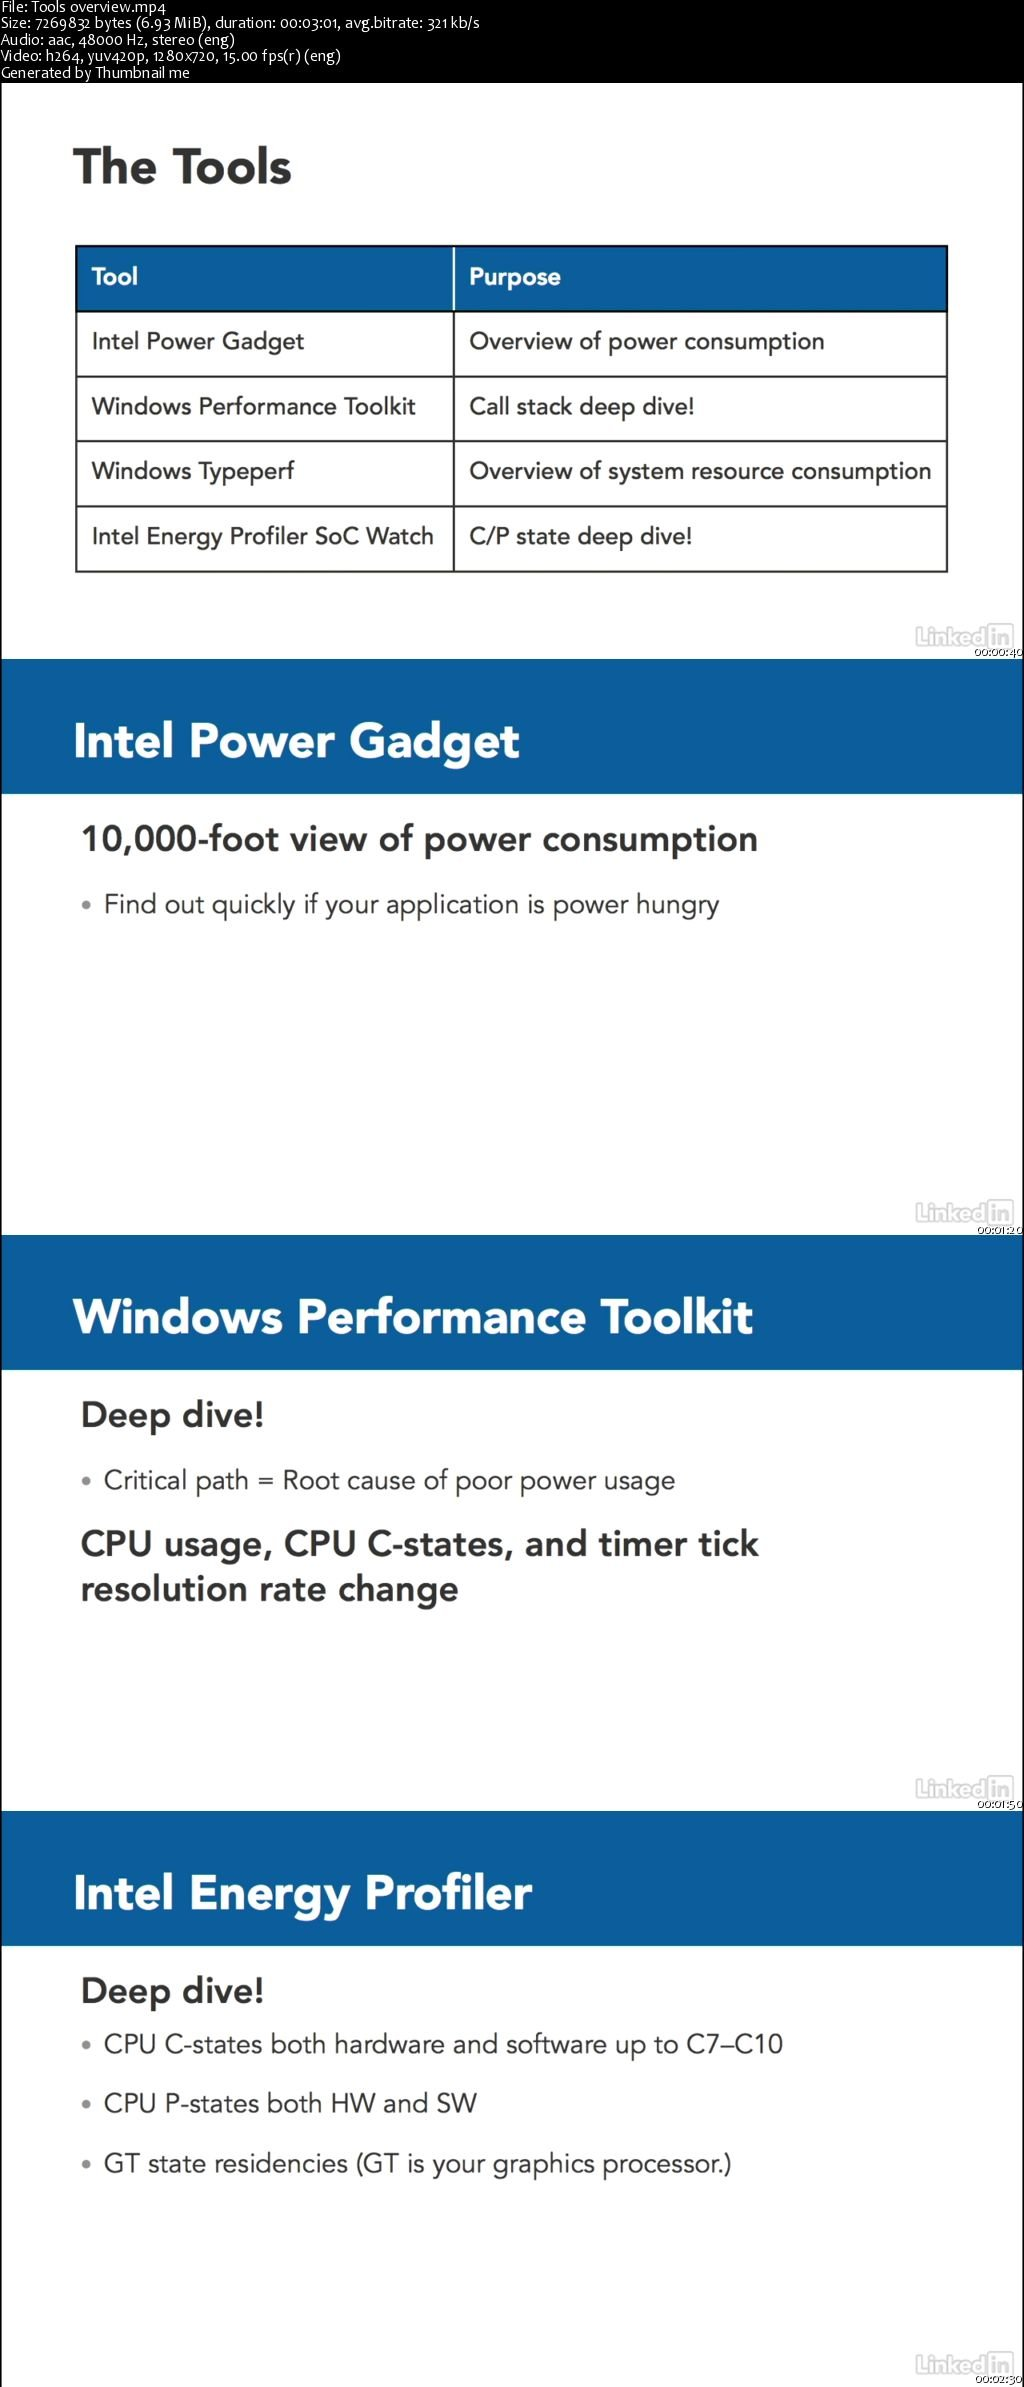 Optimizing Code with Windows Power Tools